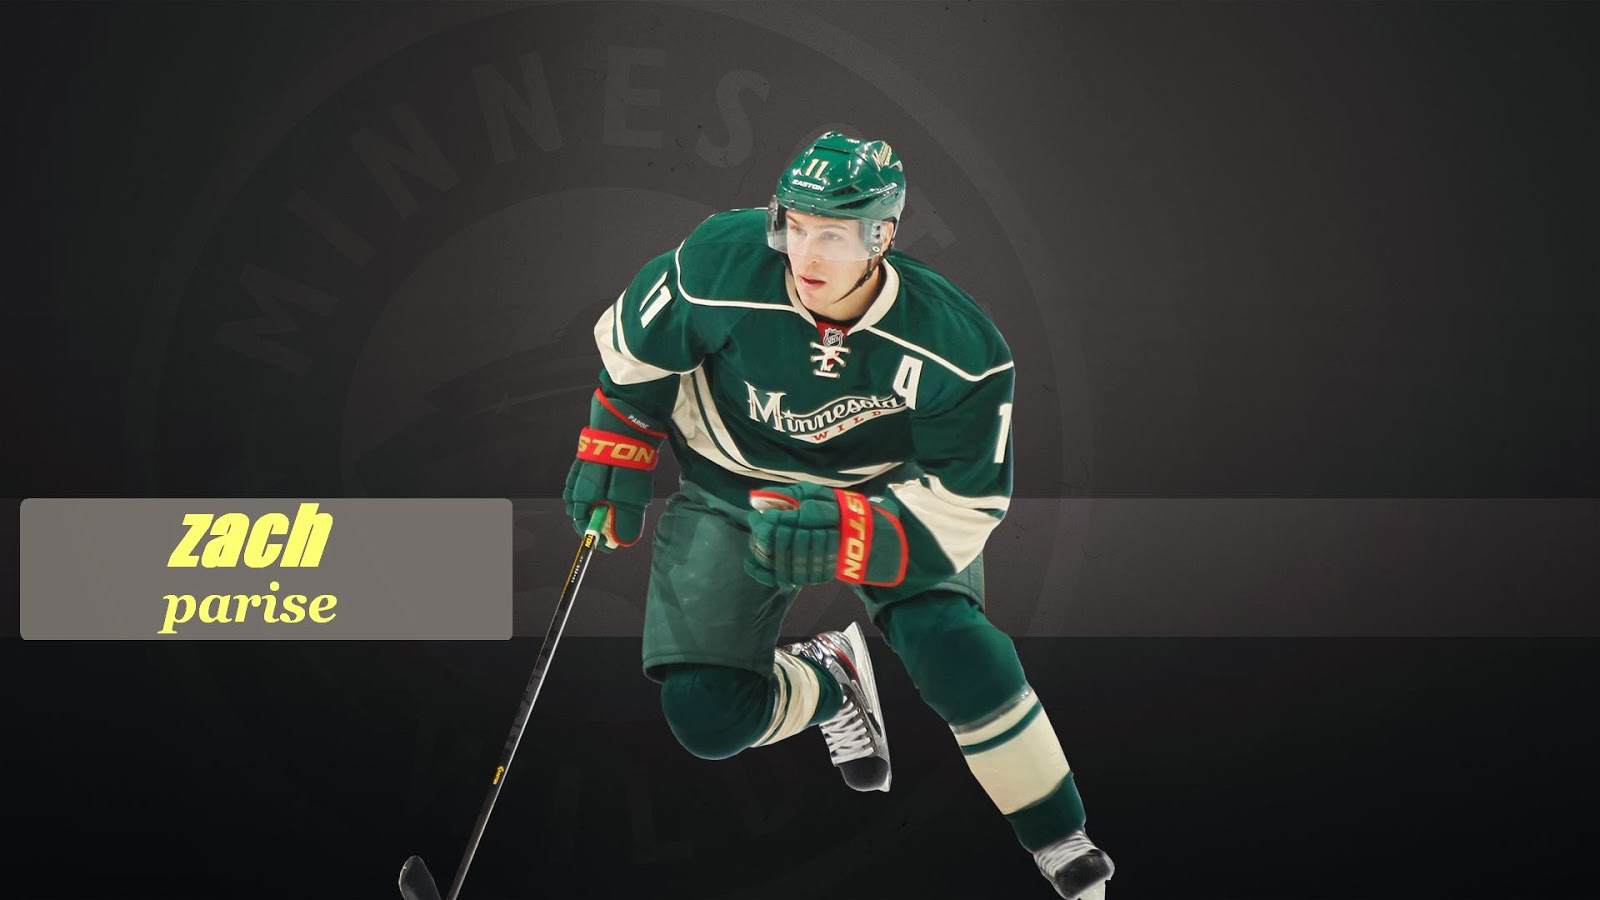 All Blu Ray Wallpapers Zach Parise Latest HD Wallpapers 2014 1600x900